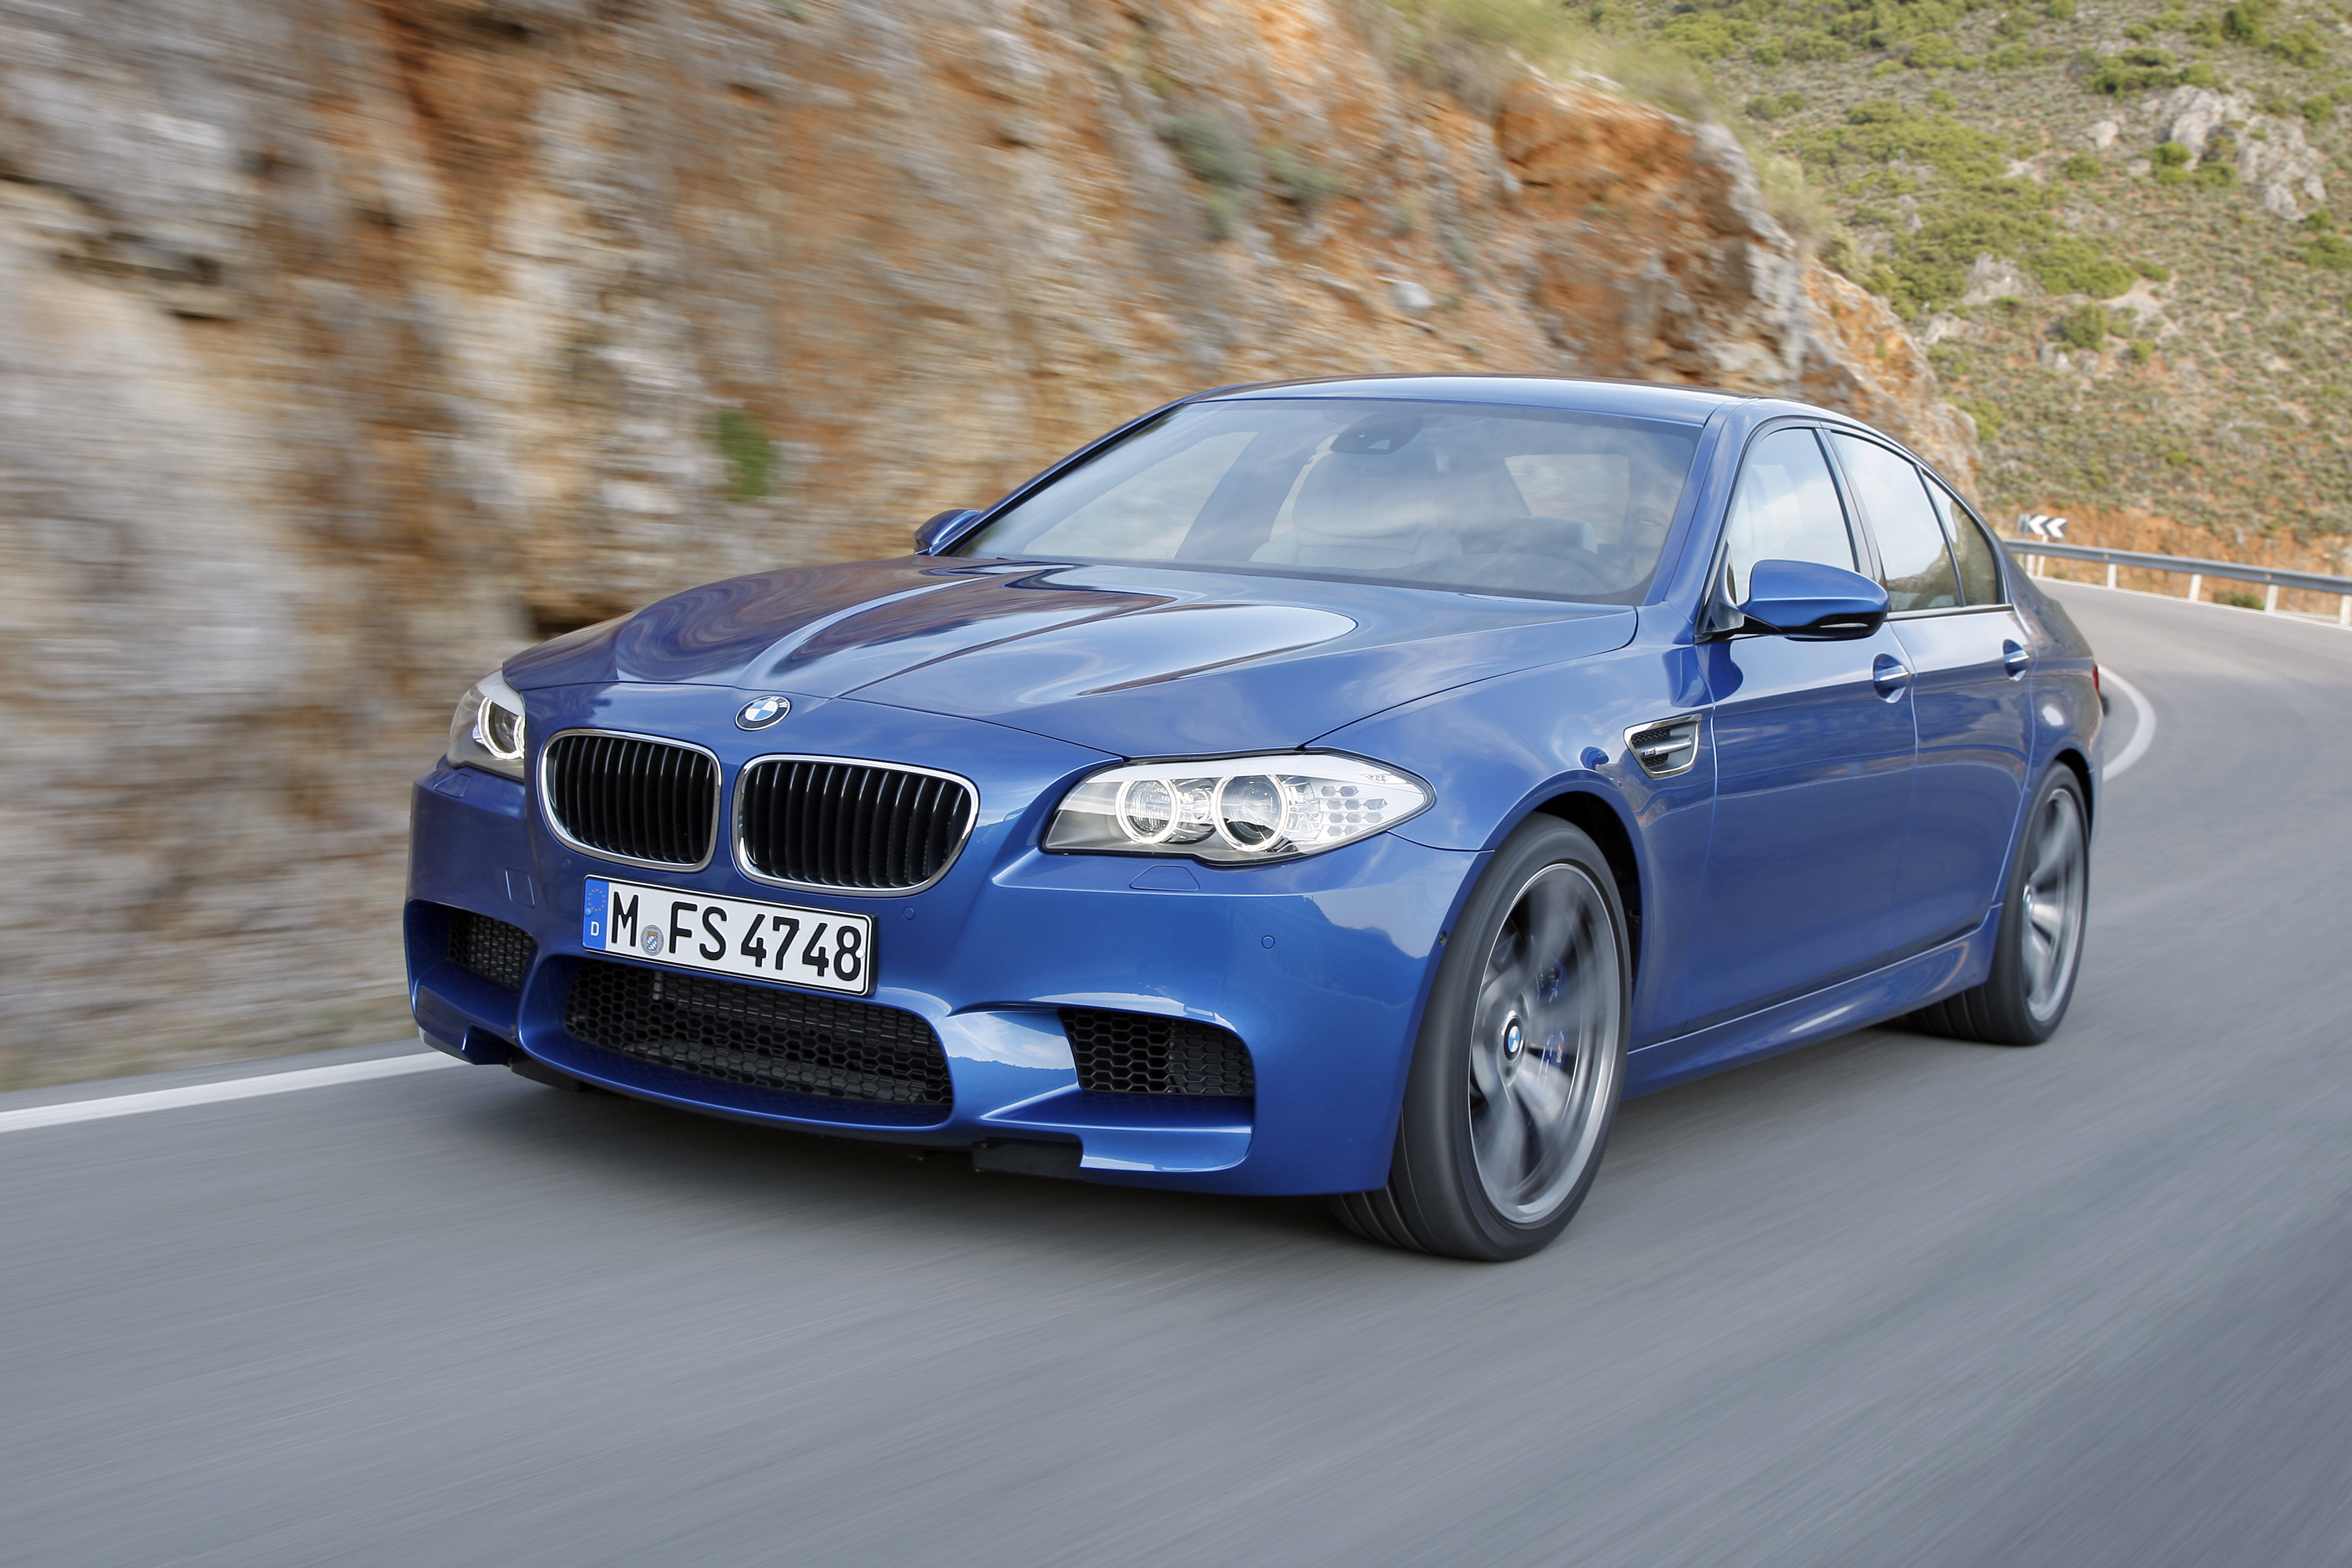 OFFICIAL BMW M5 Production pics high resolution!-p90078353.jpg